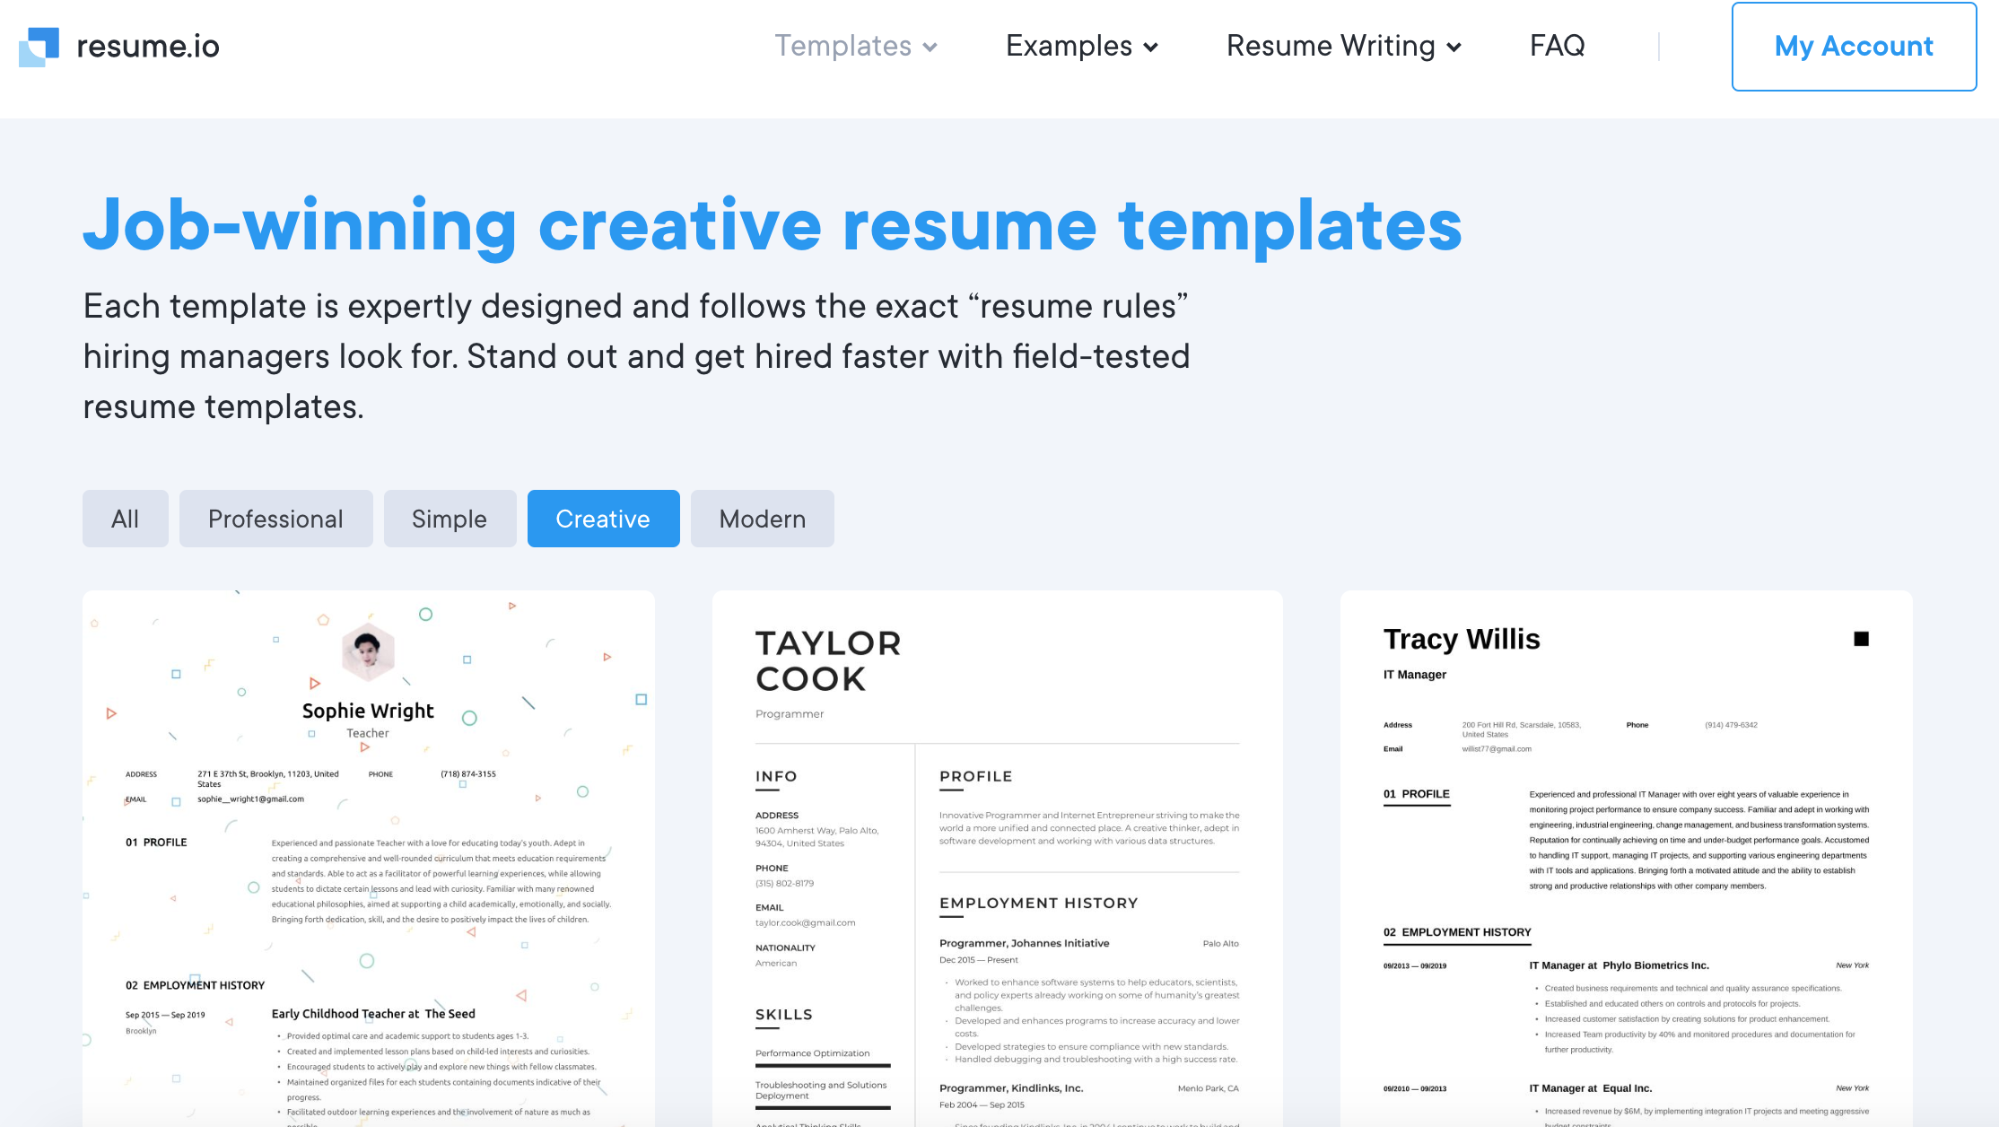 Screenshot of resume.io website page with job-winning creative resume templates.